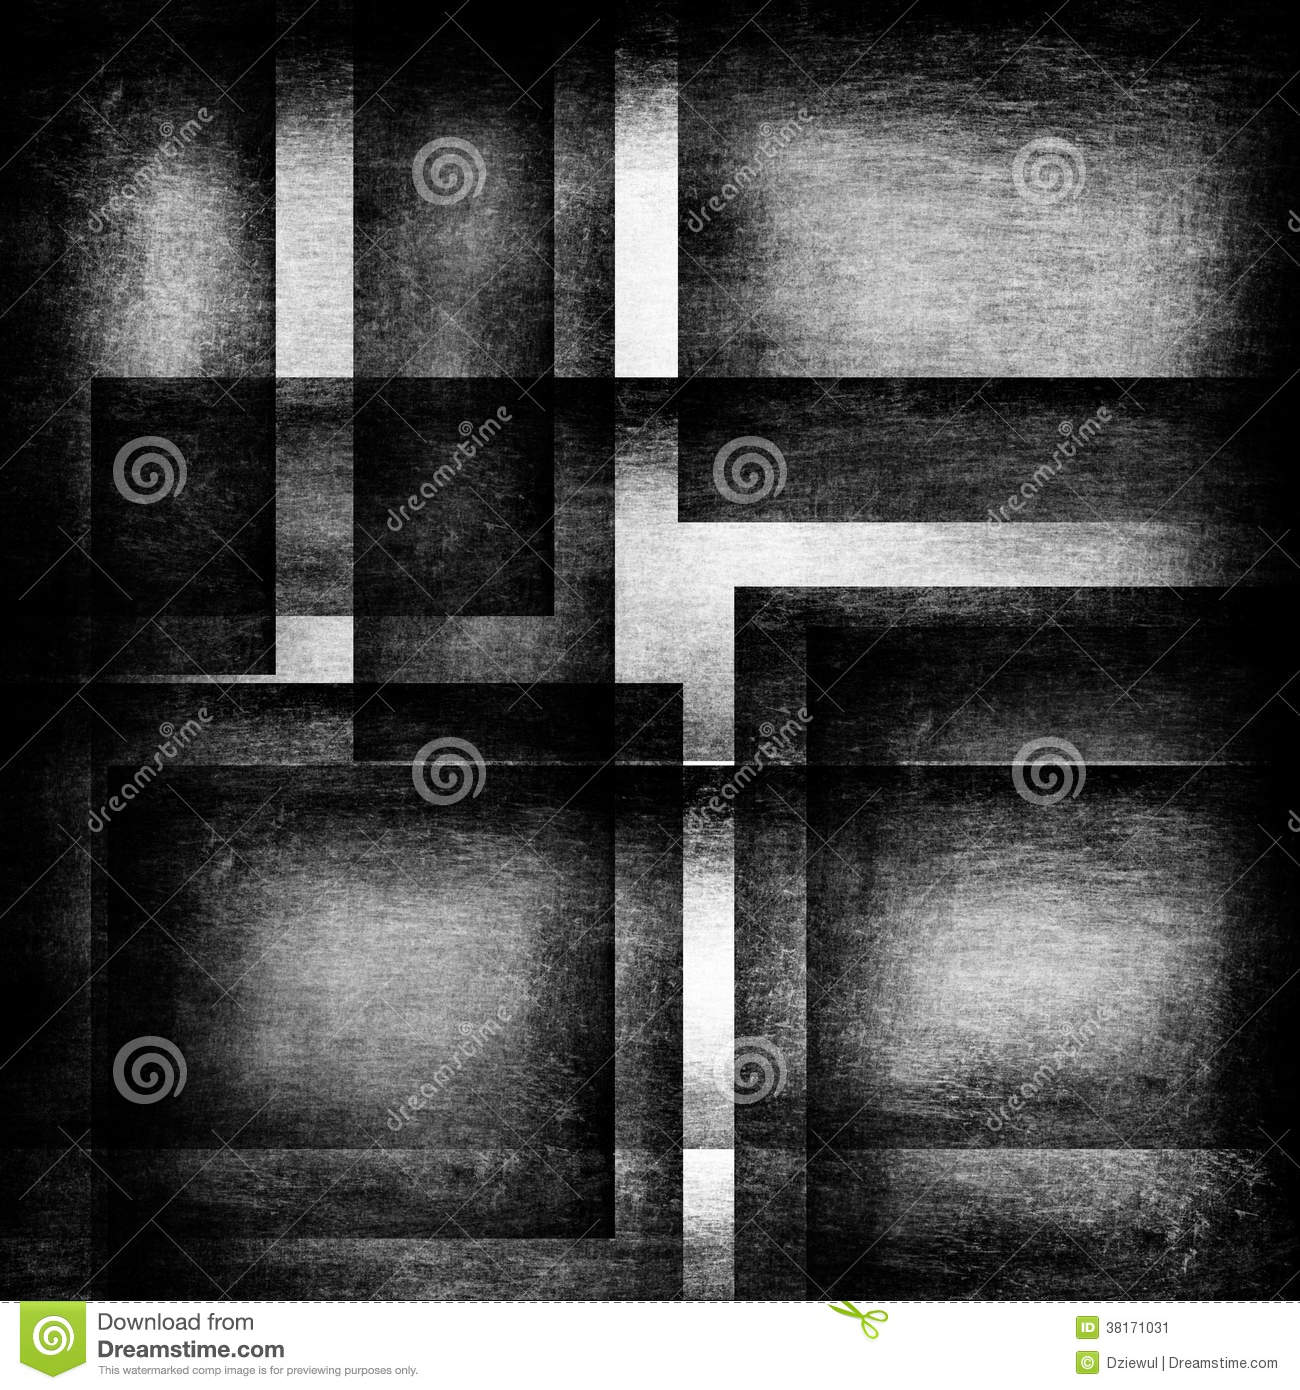 Black And White Squares Stock Image - Image: 38171031